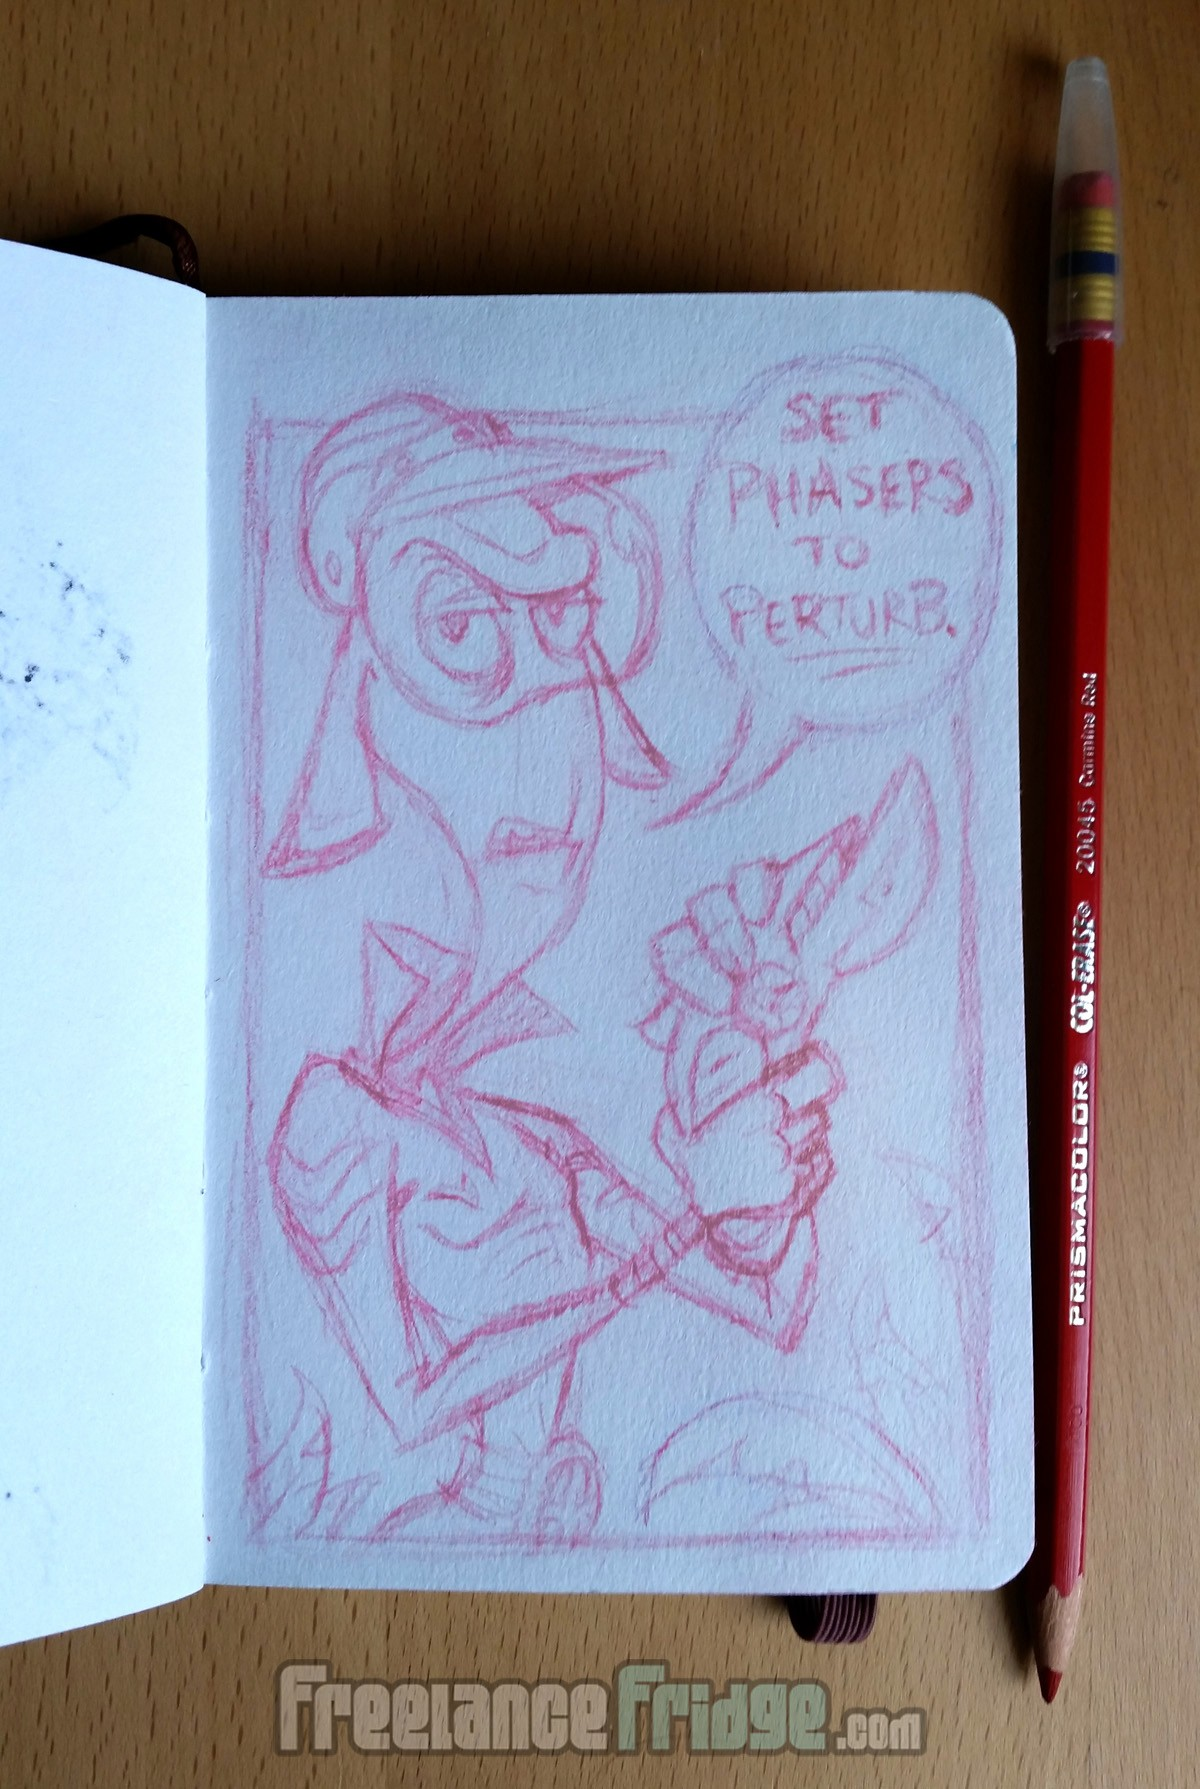 alien captain shooting perturb phasers cartoon red pencil sketch